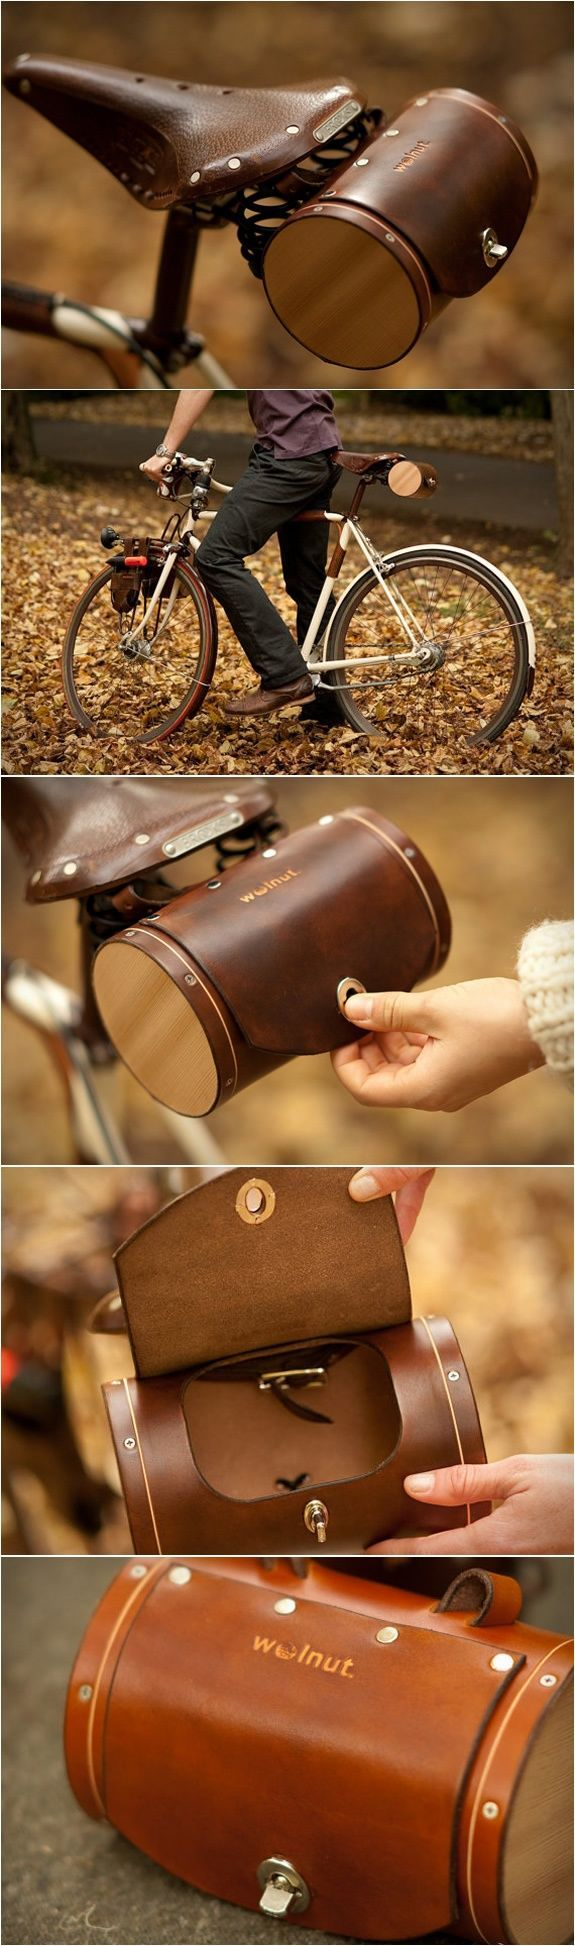 awesome Bicycle Saddle Bag / Barrel Bag // cycling fashion  & style... Check more at http://www.bestpinterest.com/pin/13614/